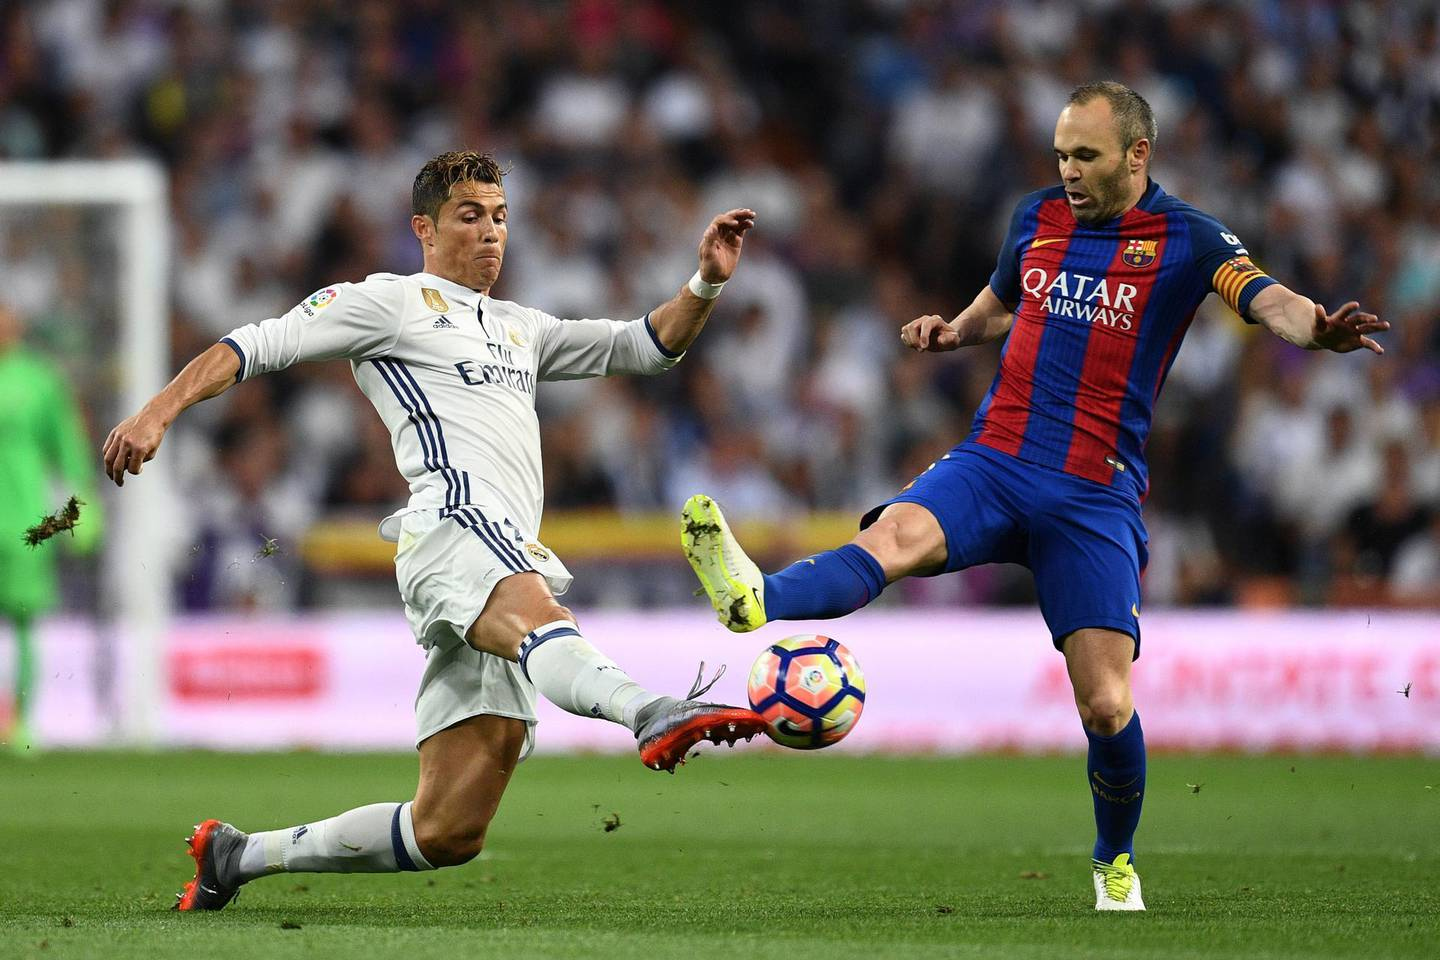 MADRID, SPAIN - APRIL 23:  Cristiano Ronaldo of Real Madrid and Andres Iniesta of Barcelona battle for the ball during the La Liga match between Real Madrid CF and FC Barcelona at Estadio Bernabeu on April 23, 2017 in Madrid, Spain.  (Photo by David Ramos/Getty Images)